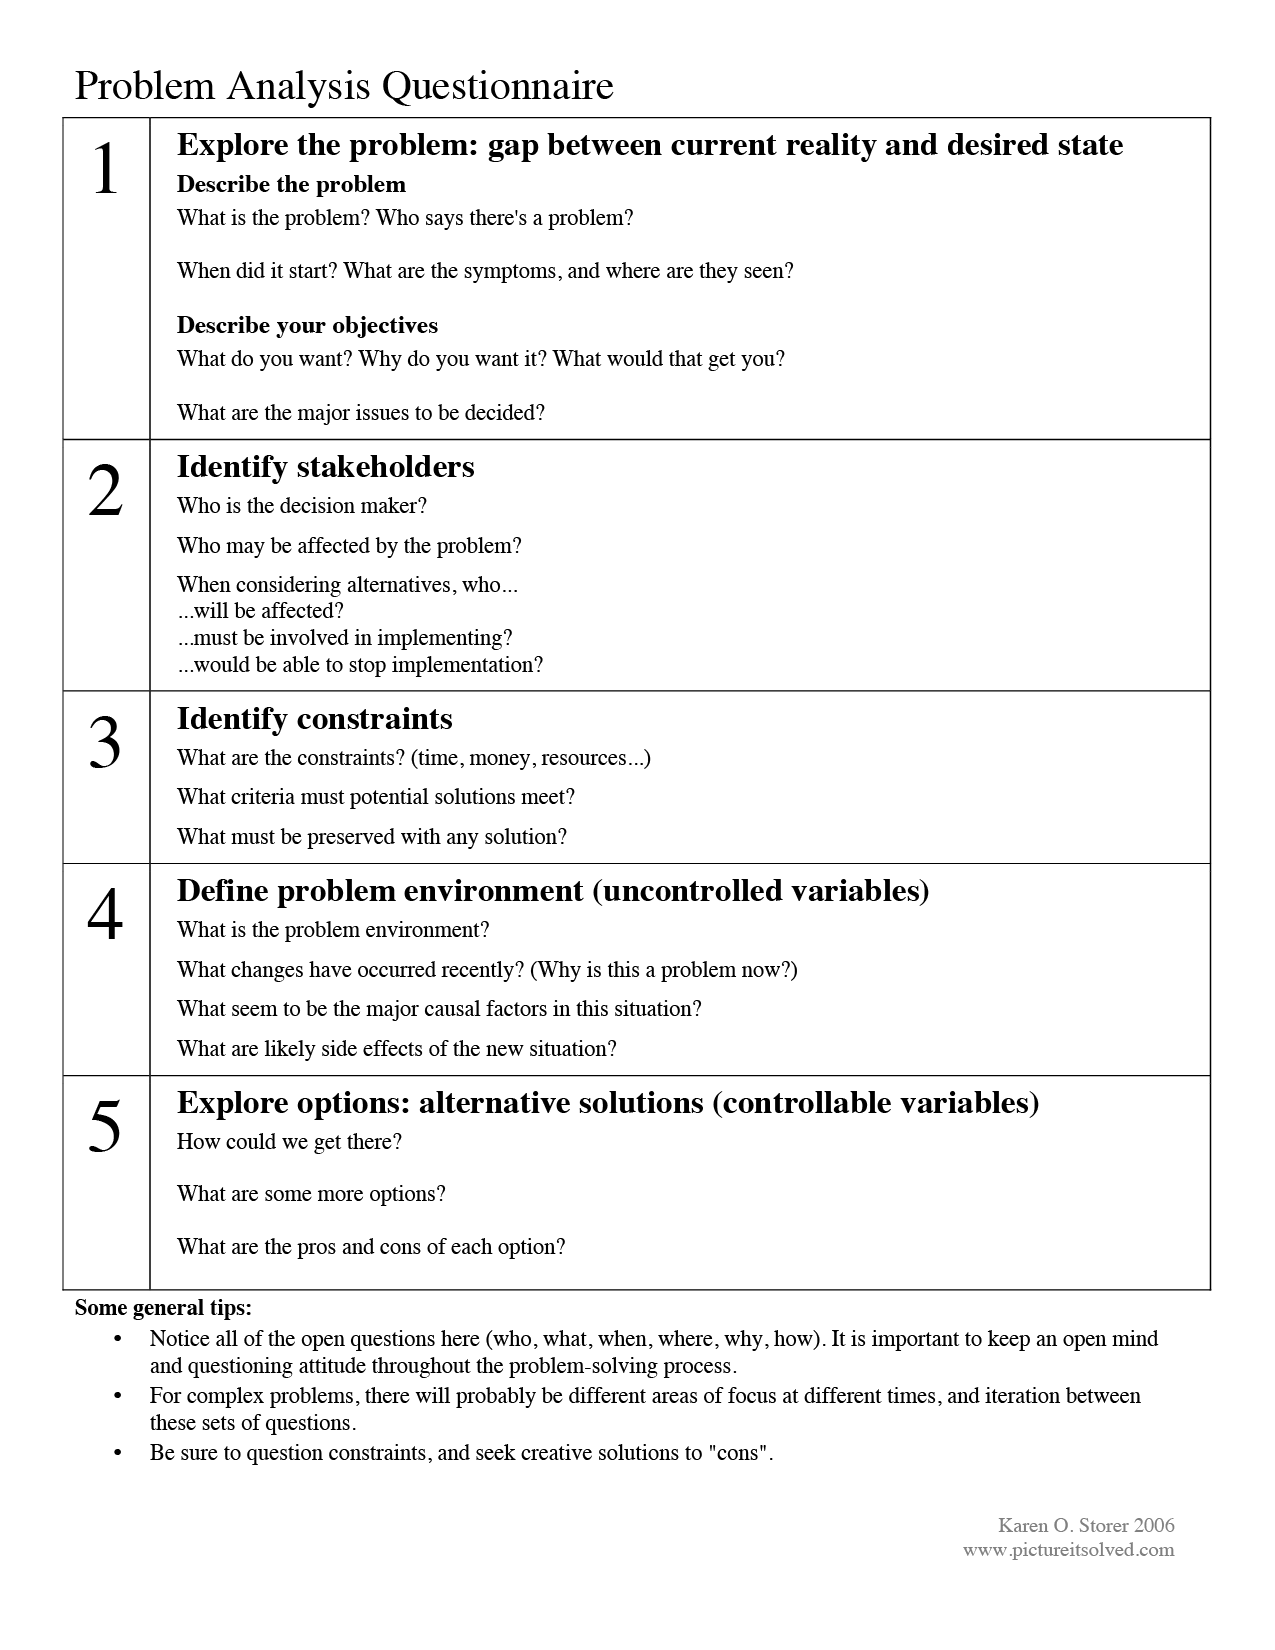 Printables Social Skills Problem Solving Worksheets problem solving basics picture it solved analysis questionnaire